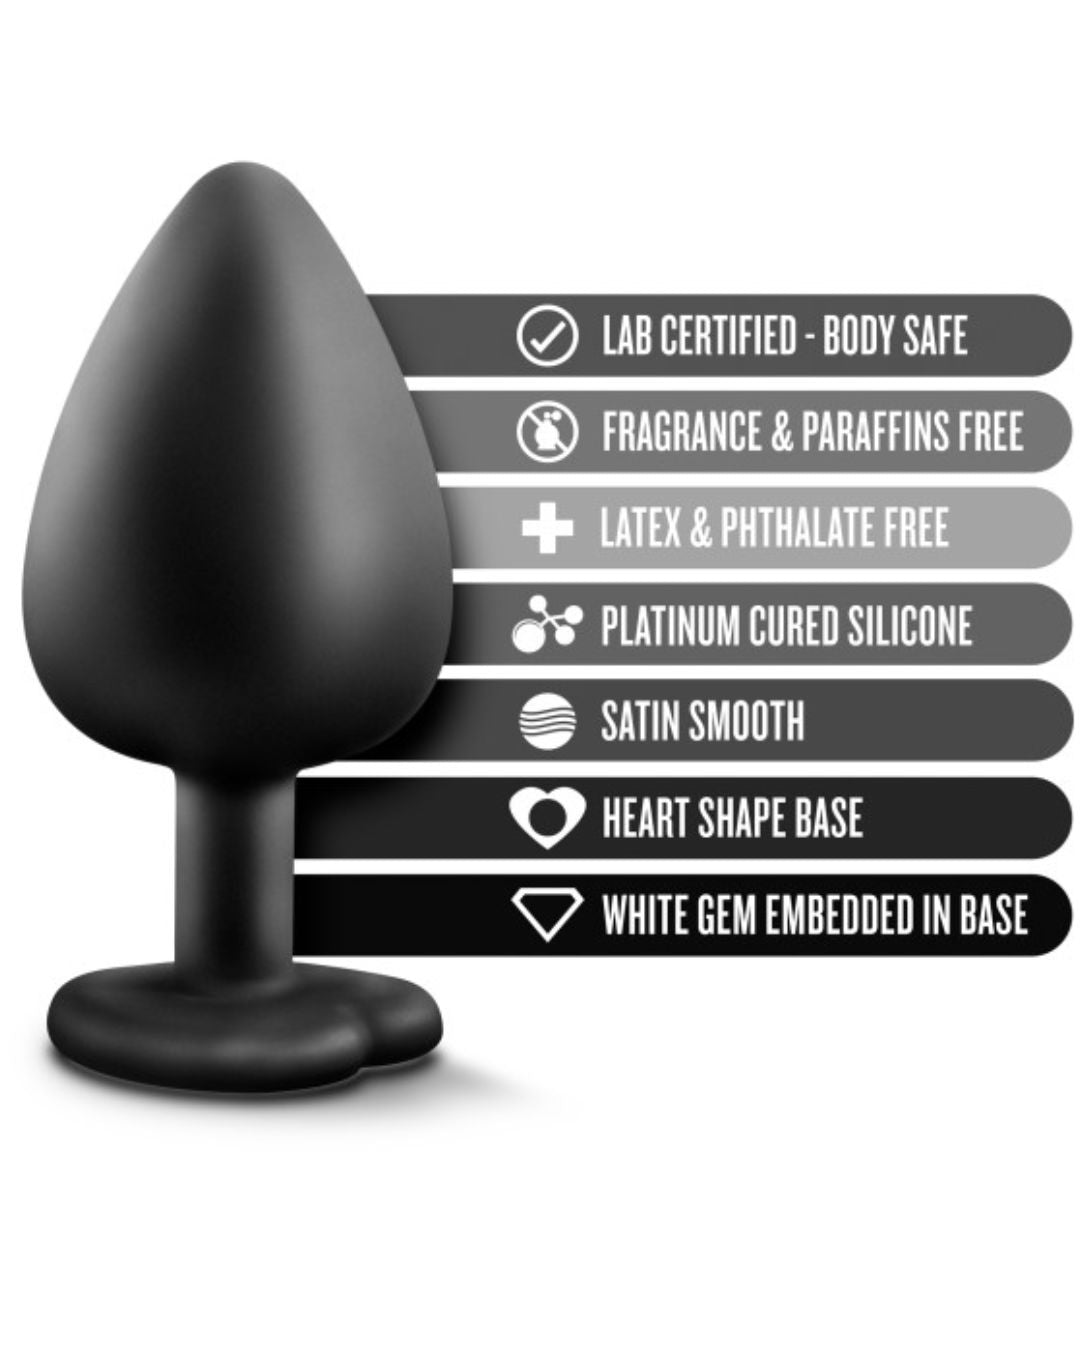 Temptasia Bling Large Silicone Butt Plug by Blush - Black